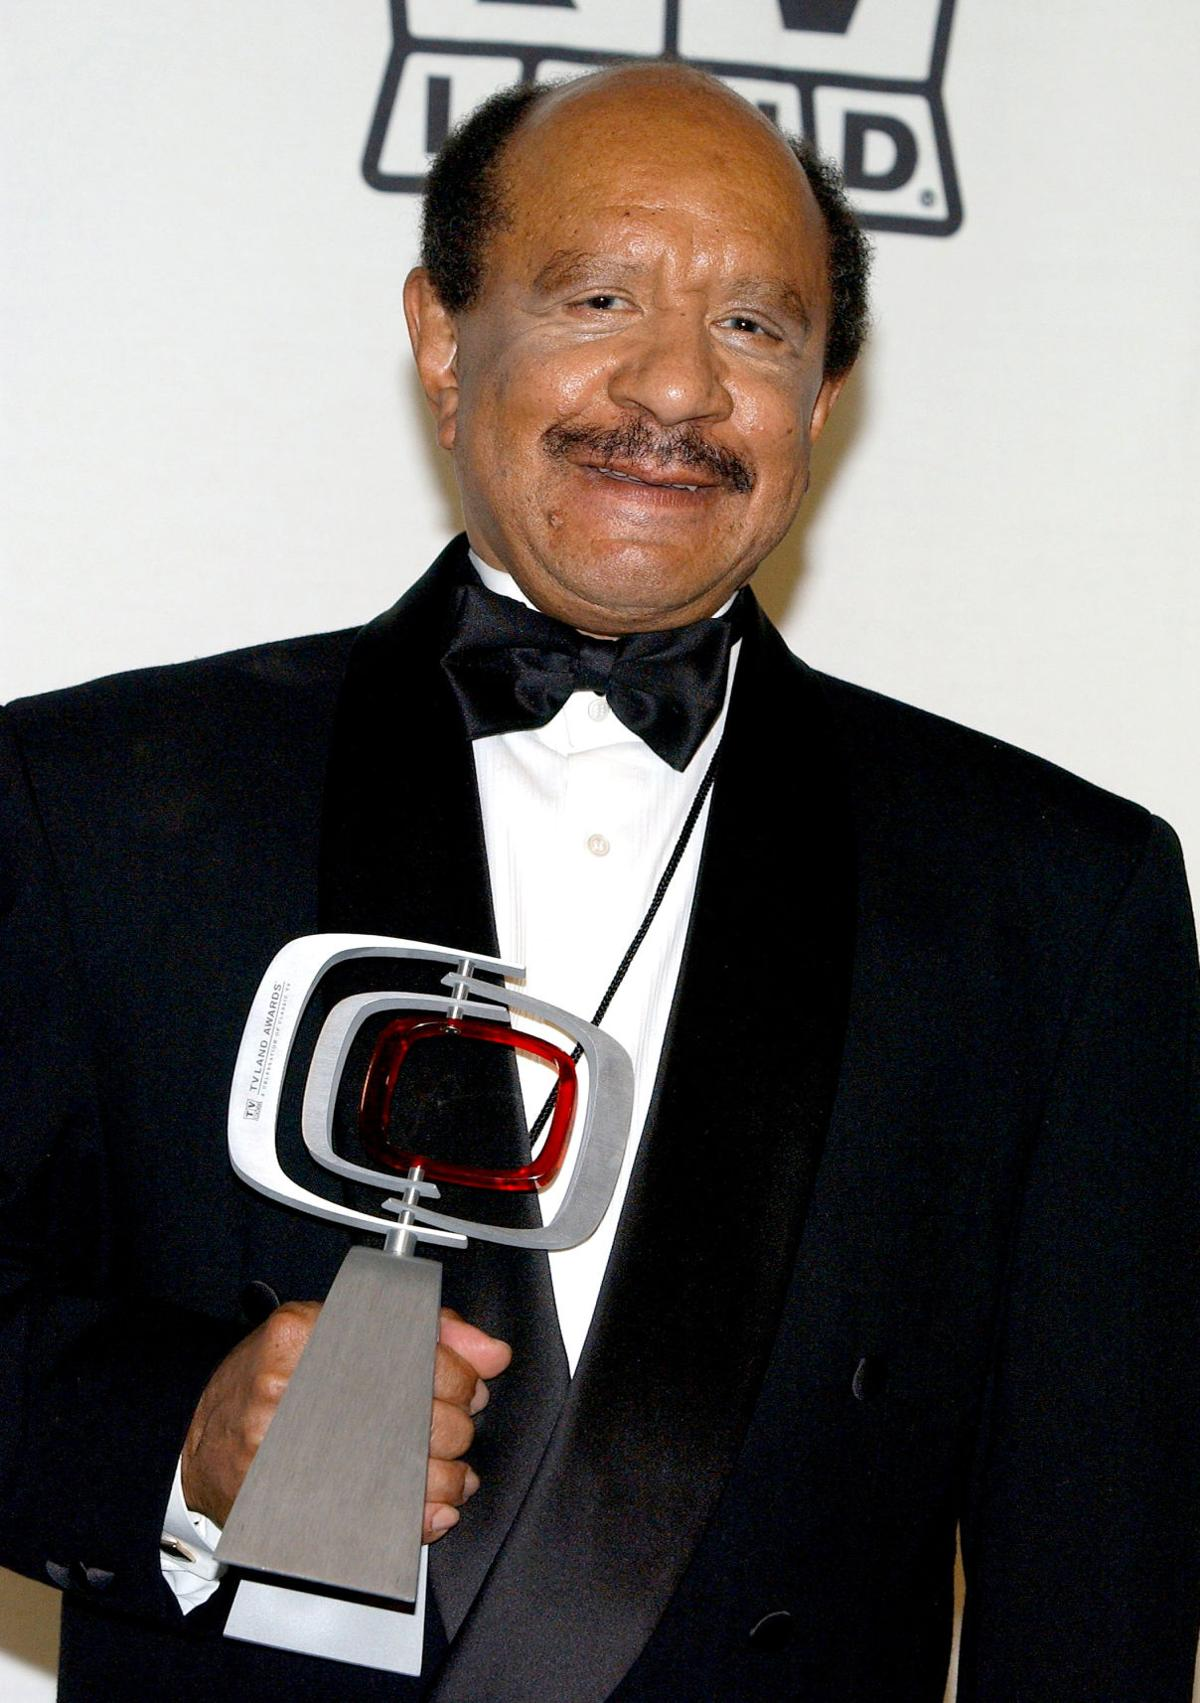 Sherman Hemsley, actor best known for portraying George Jefferson, has died at 74